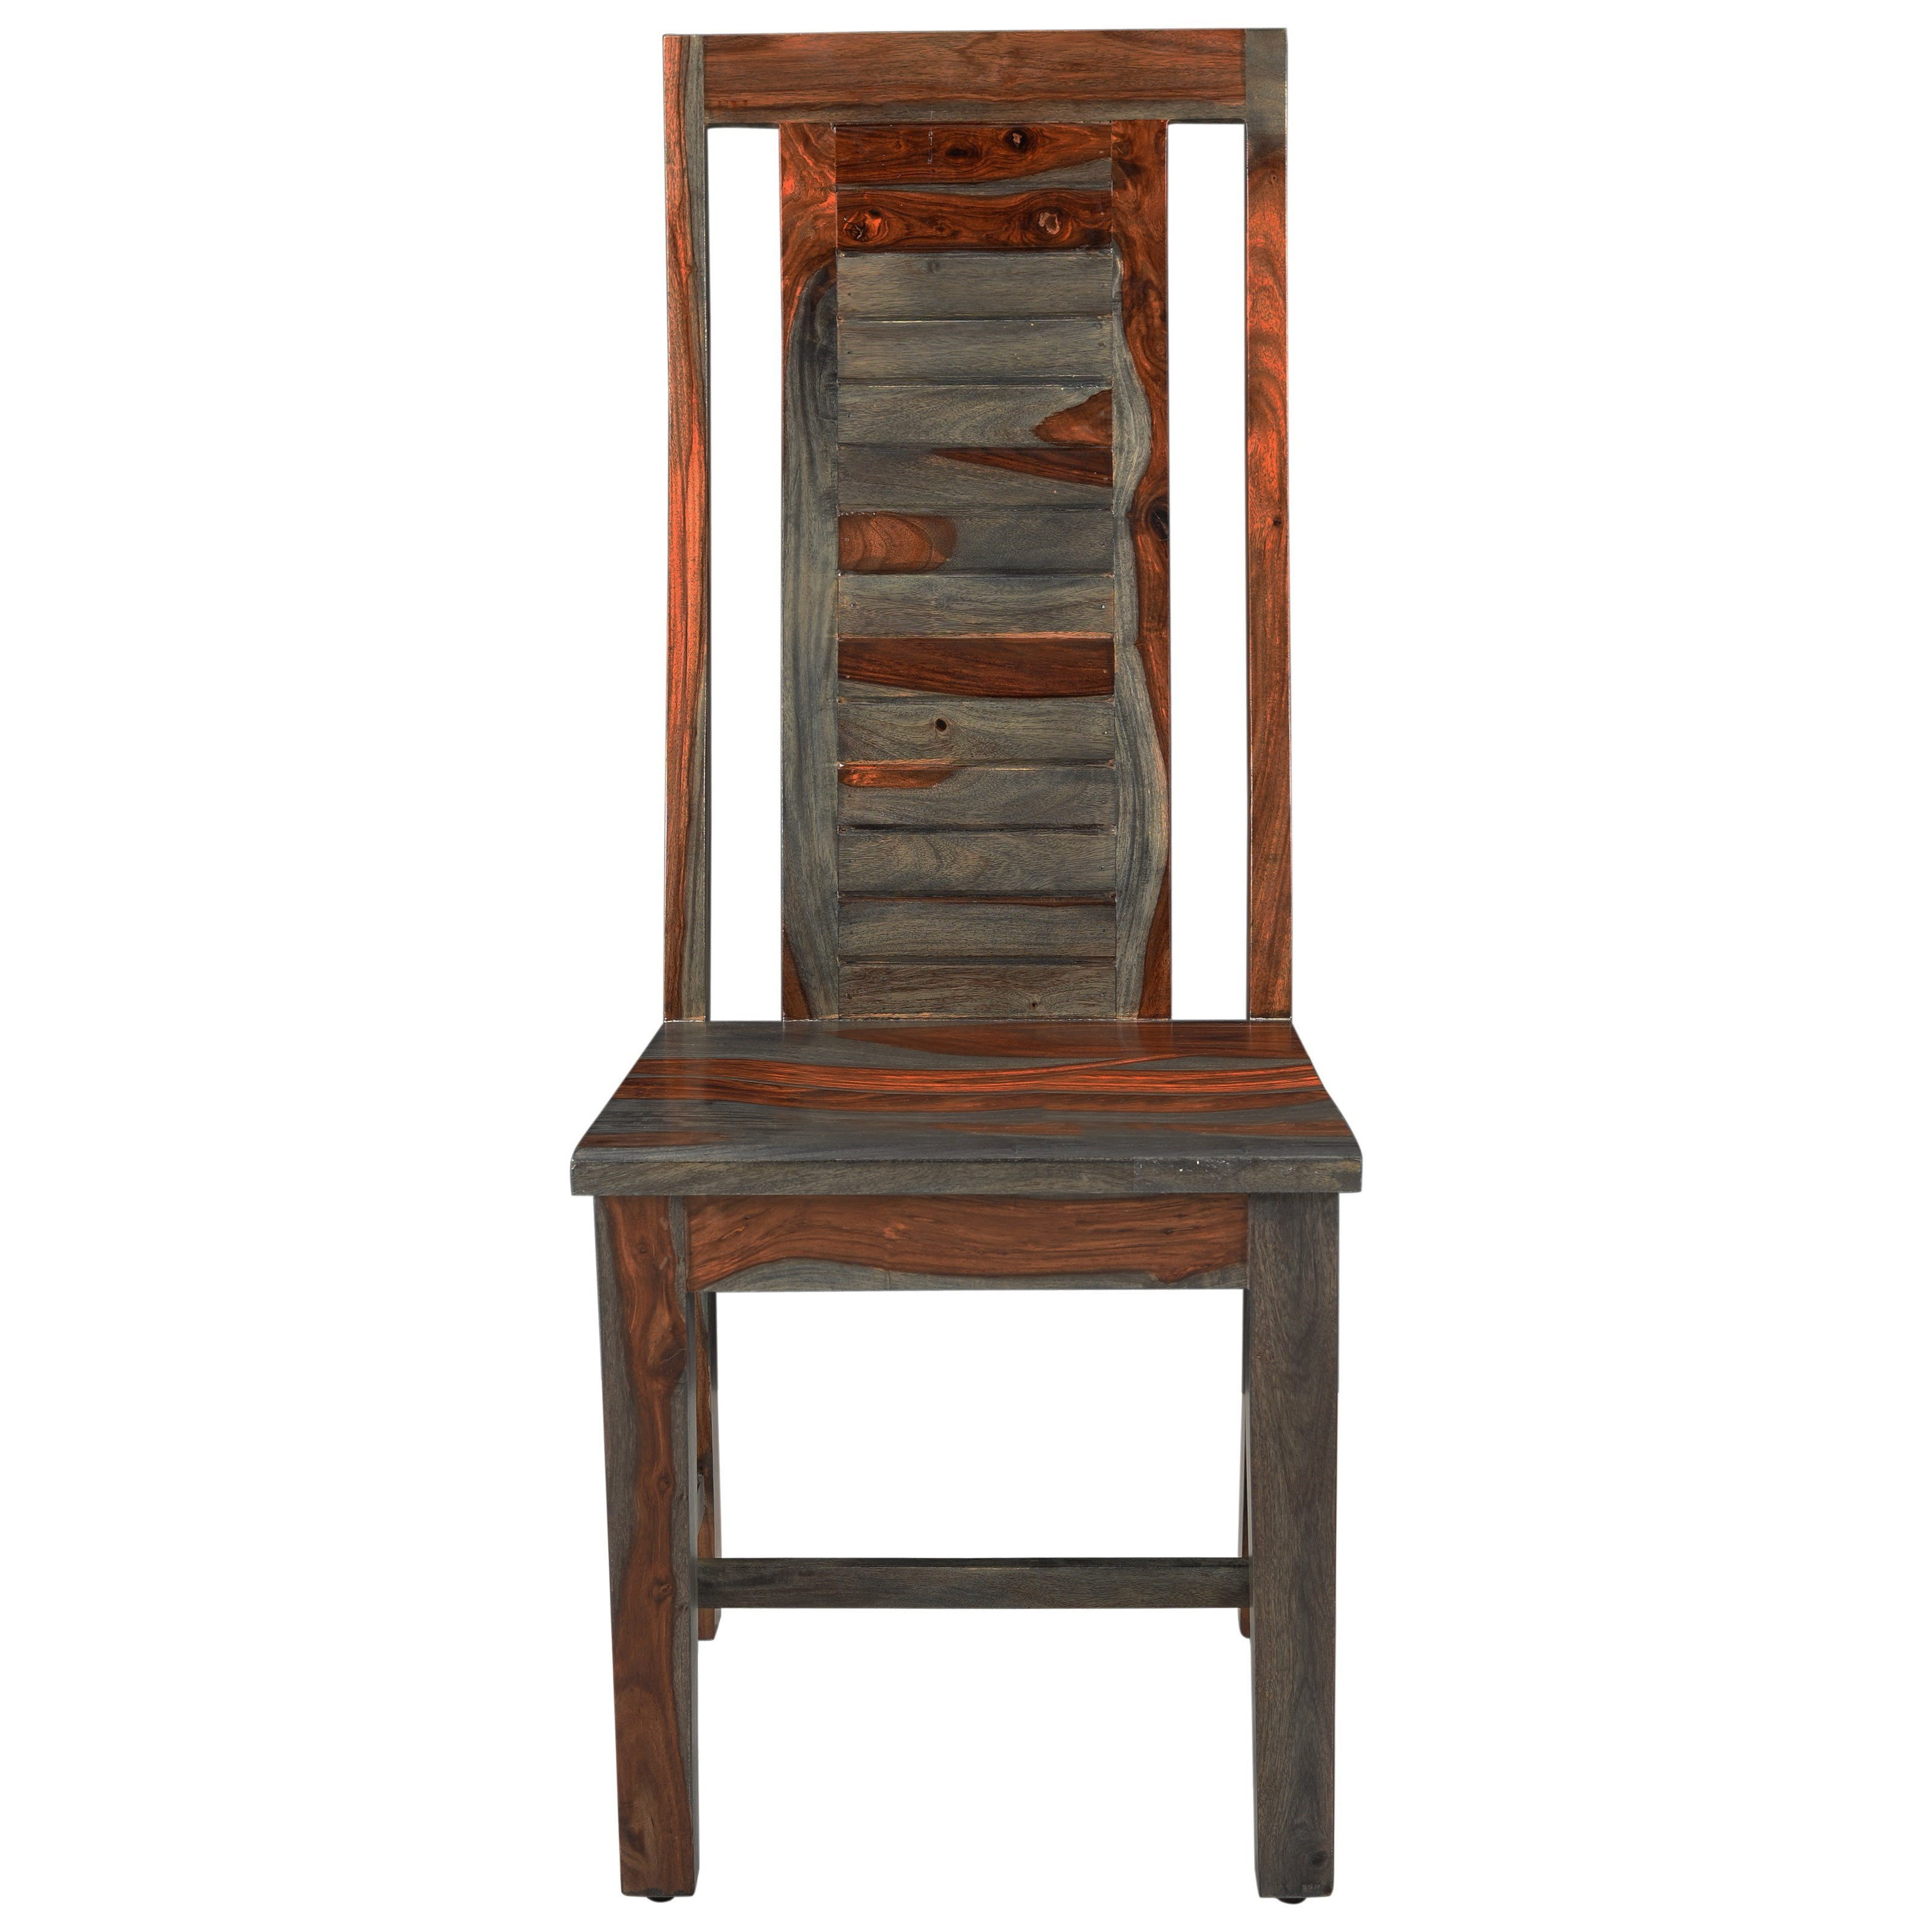 Coast to coast imports capri 93444 dining chair becker for Furniture world